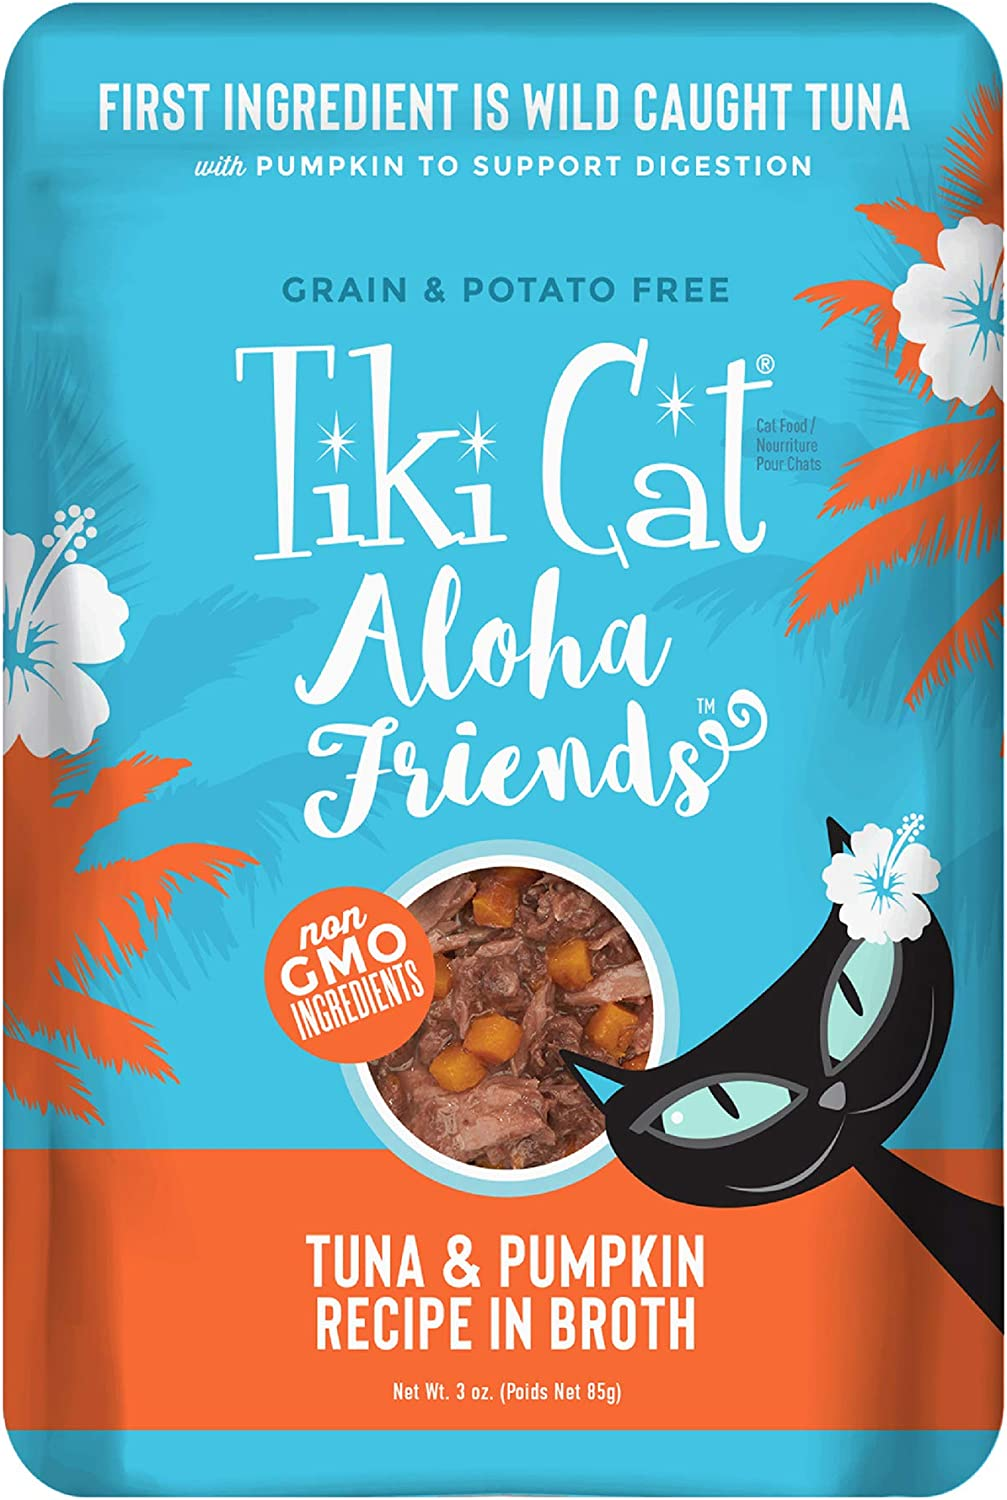 Tiki Cat Aloha Friends Grain-Free, Low-Carbohydrate Wet Food with Flaked Tuna for Adult Cats & Kittens, 3oz pouch, 12pk, Tuna & Pumpkin